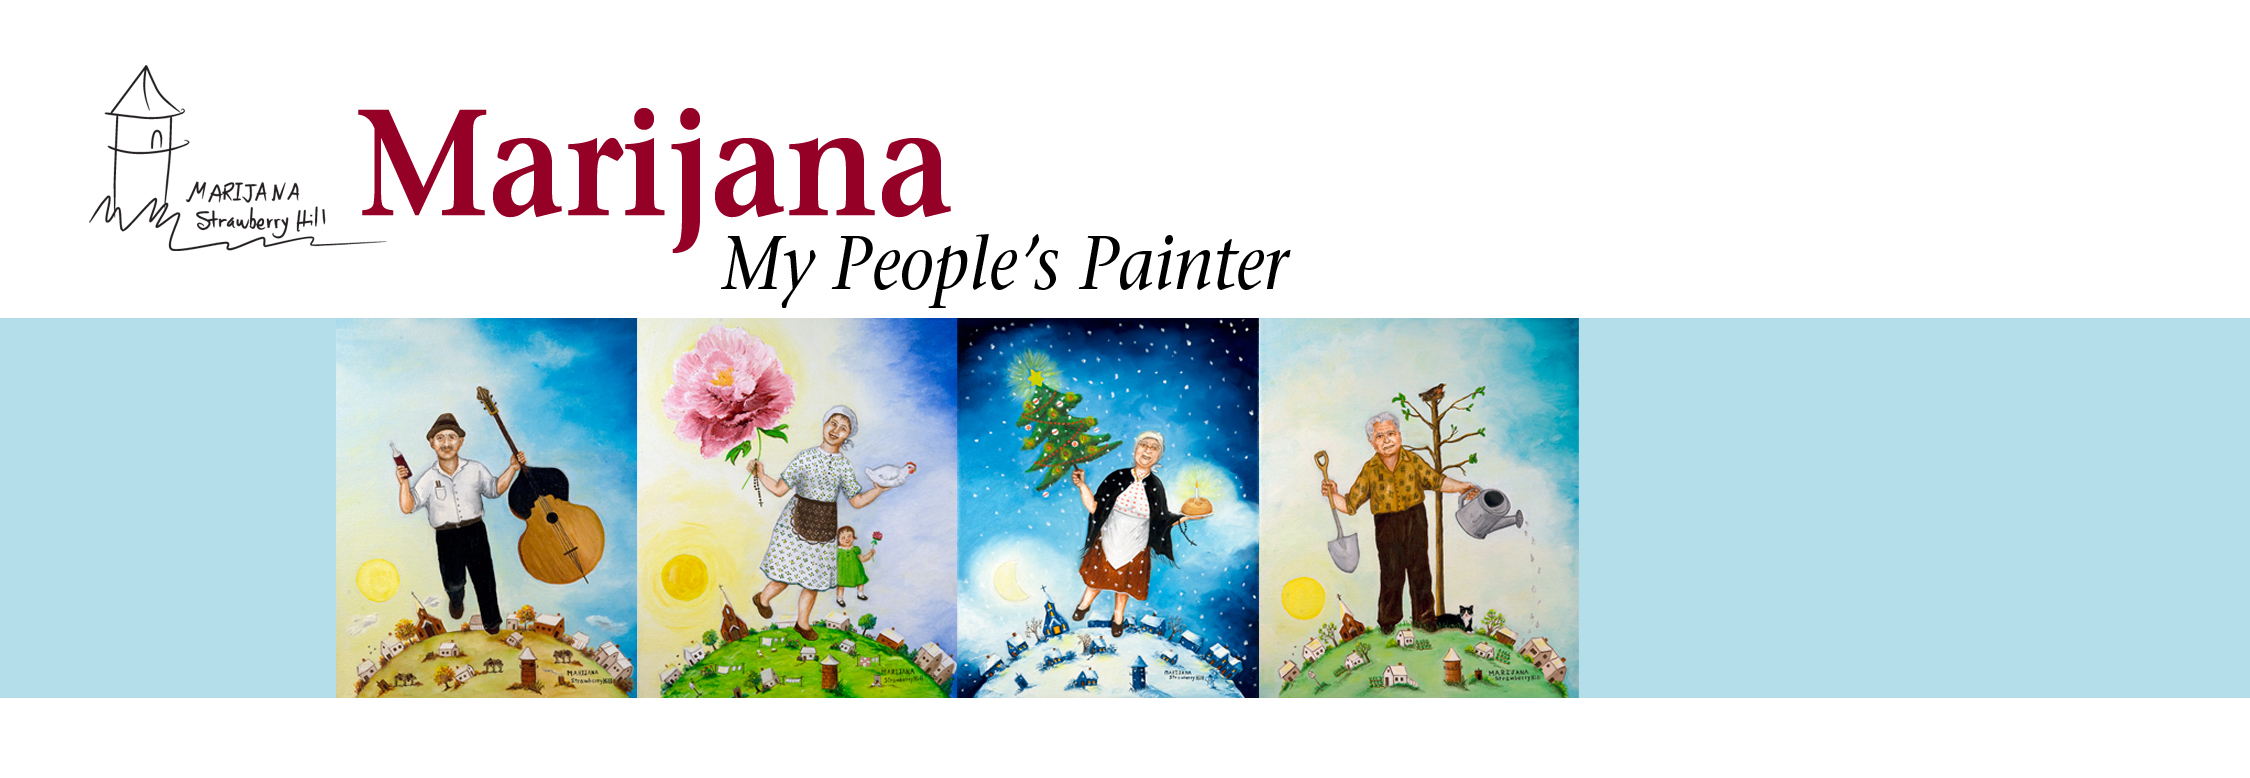 Marijana - My People's Painter exhibit